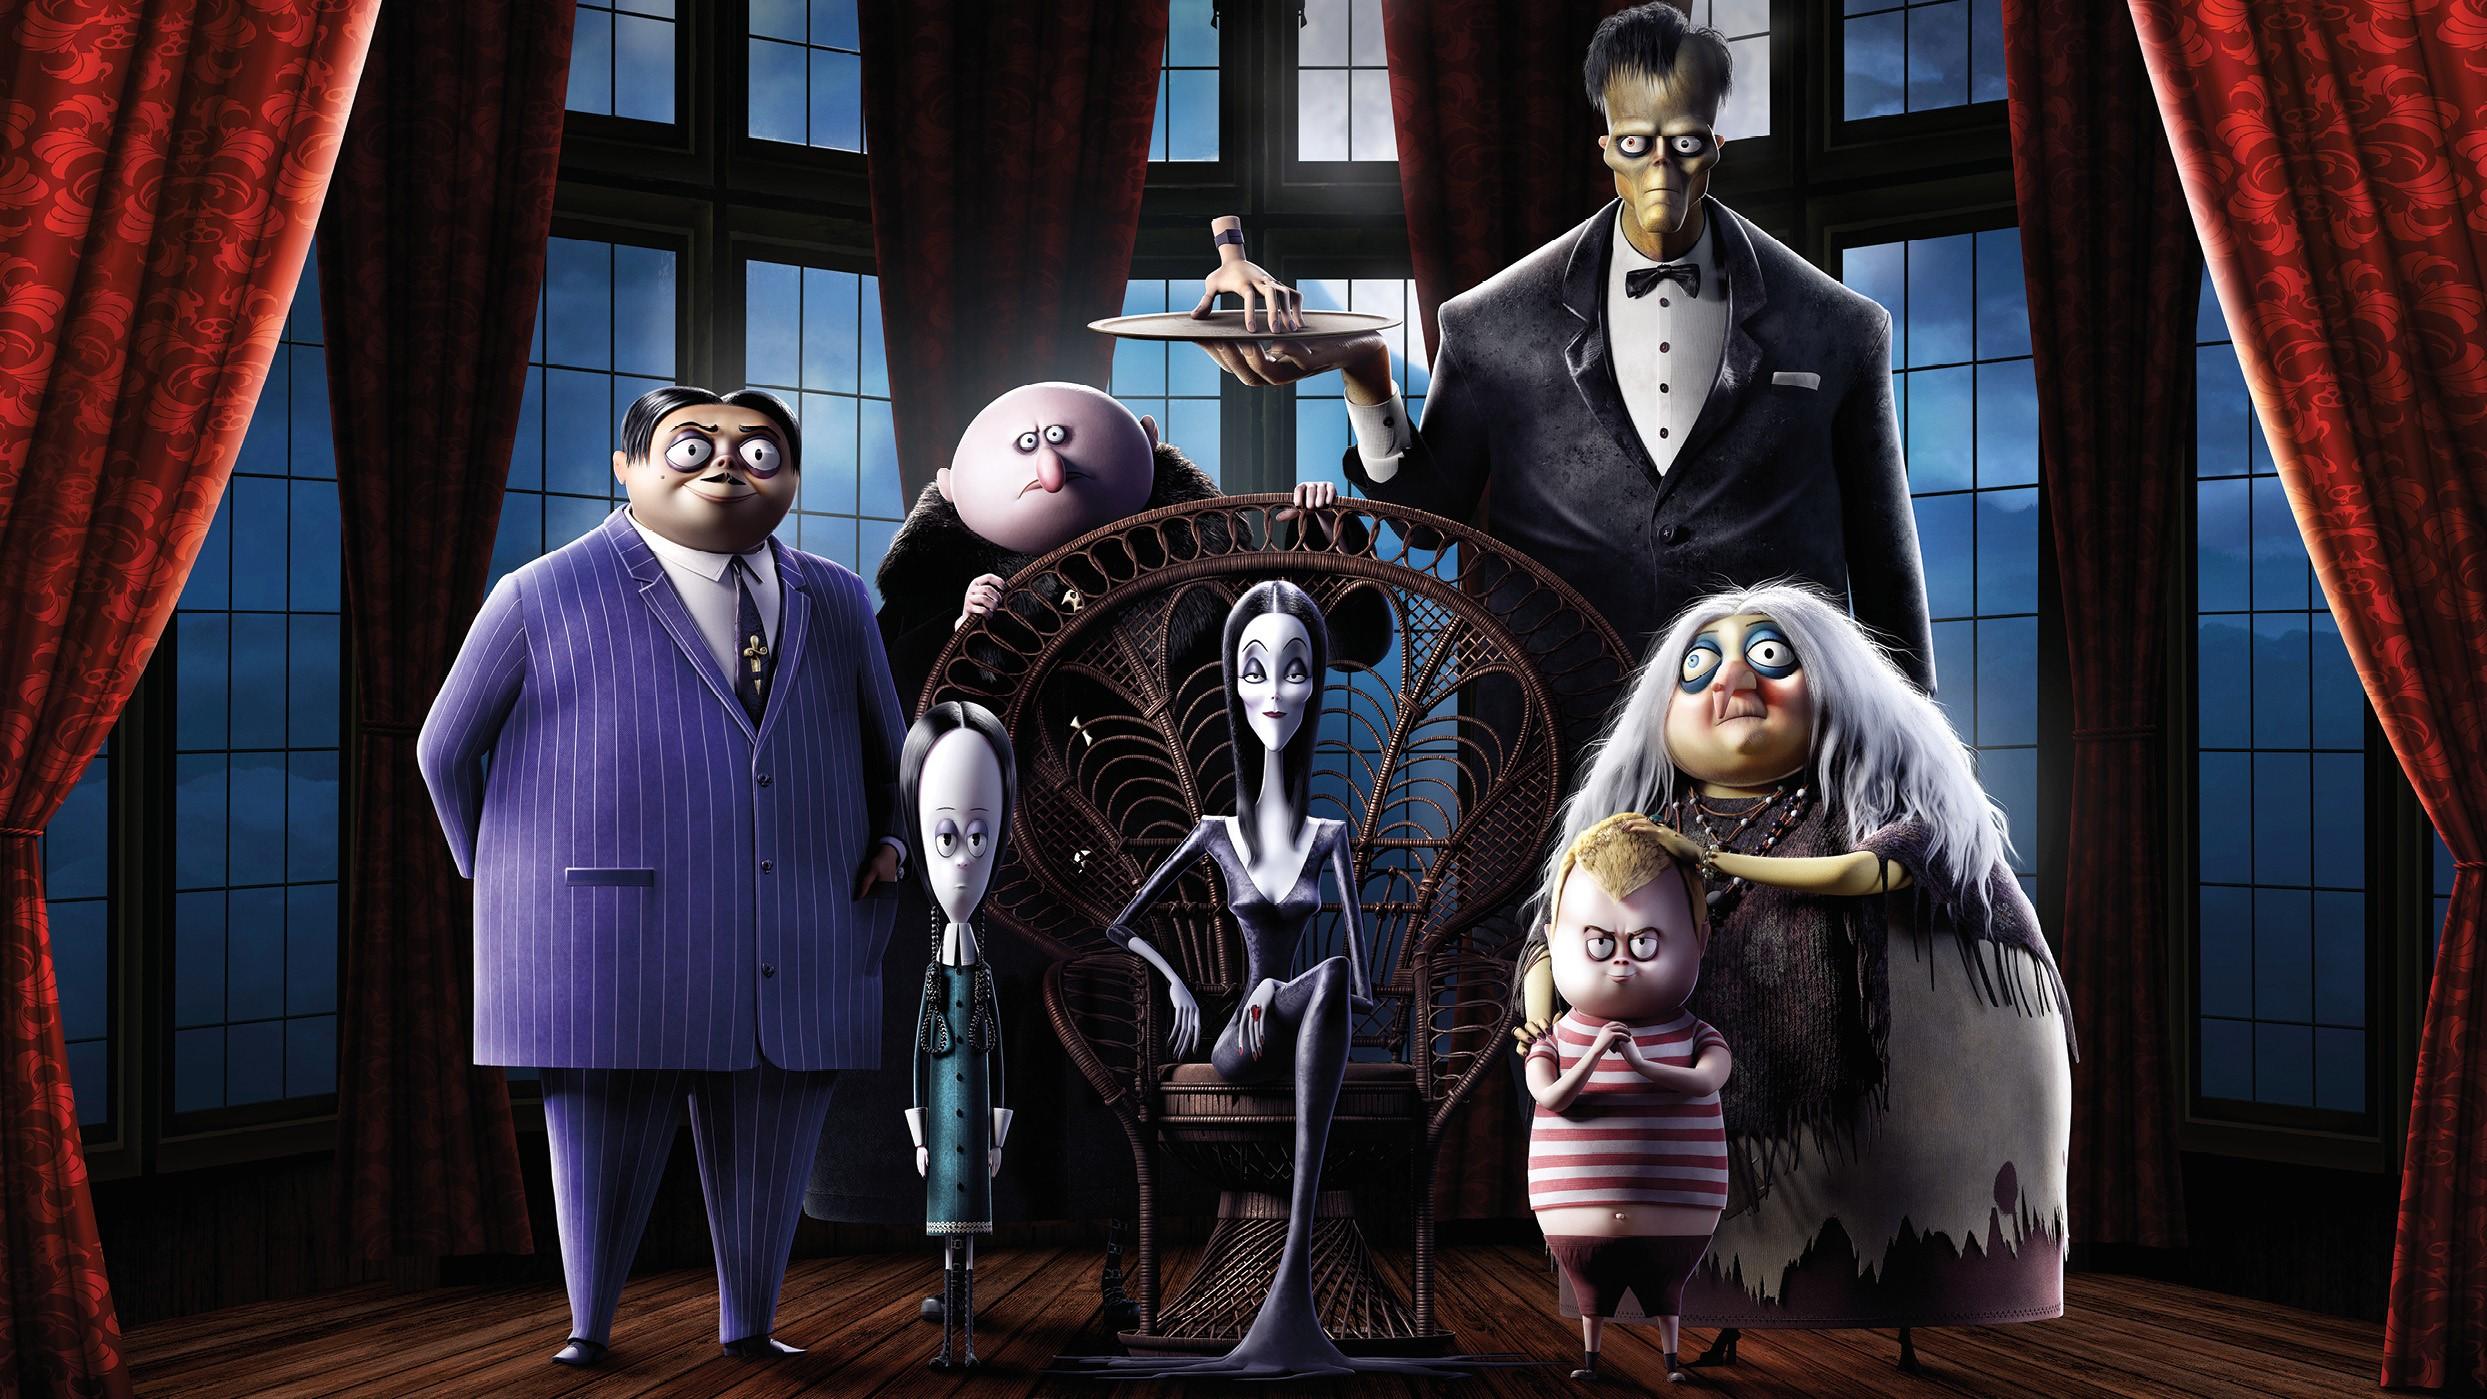 Family Film: The Addams Family